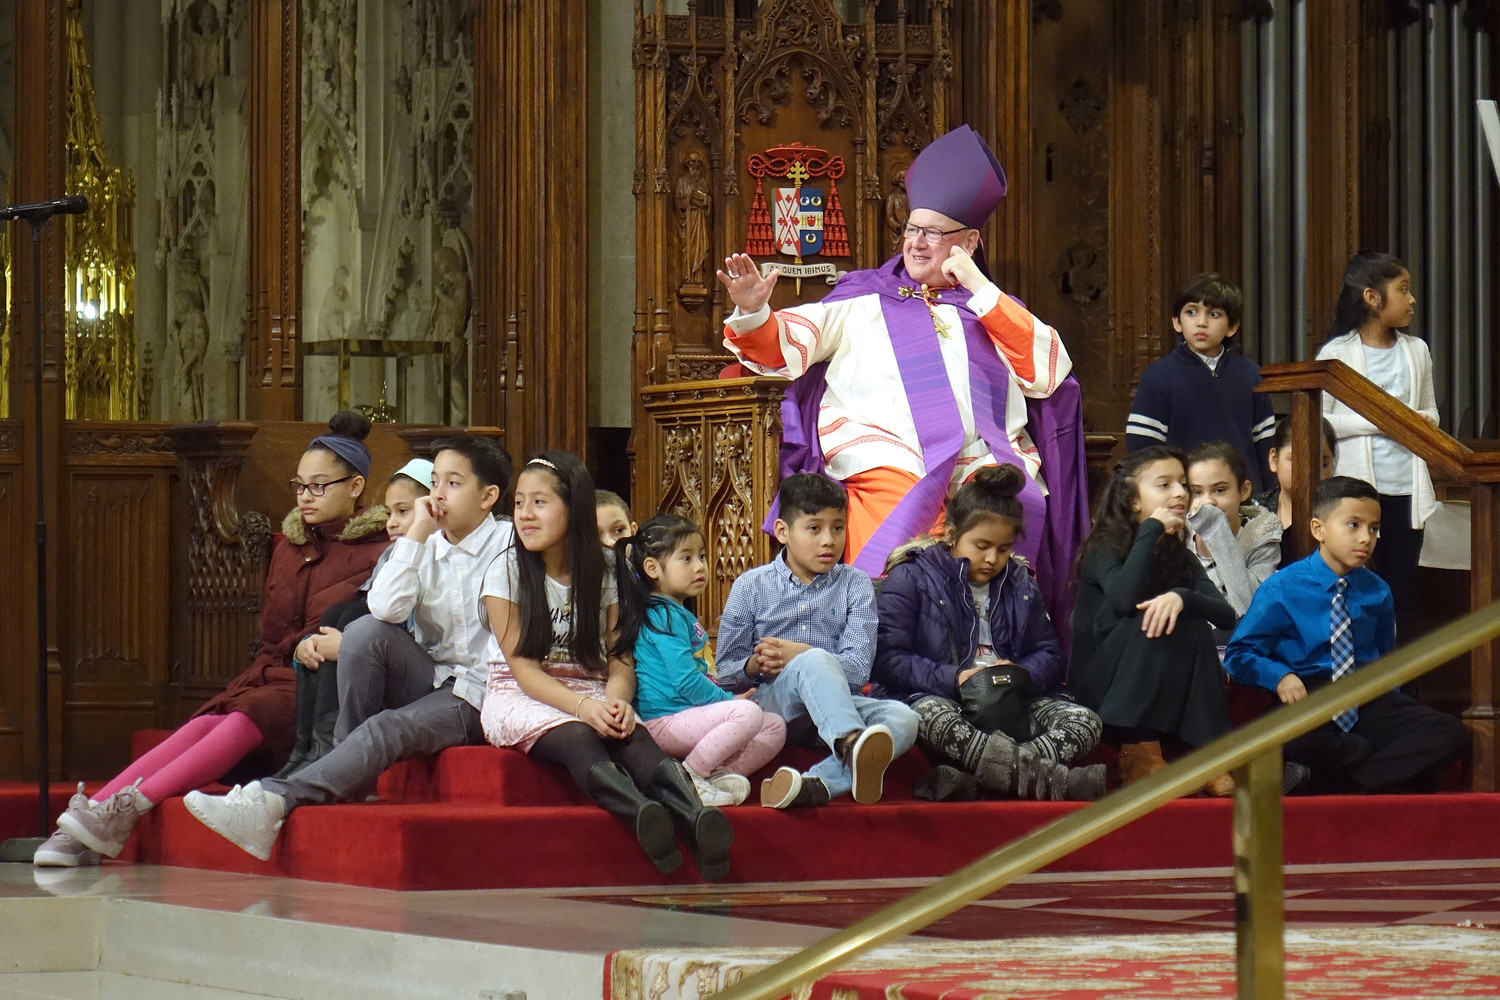 During the signings by catechumens, children from the congregation gather near Cardinal Dolan, the principal celebrant, in the sanctuary. This year's Rite of Election drew 305 catechumens from 81 parishes.